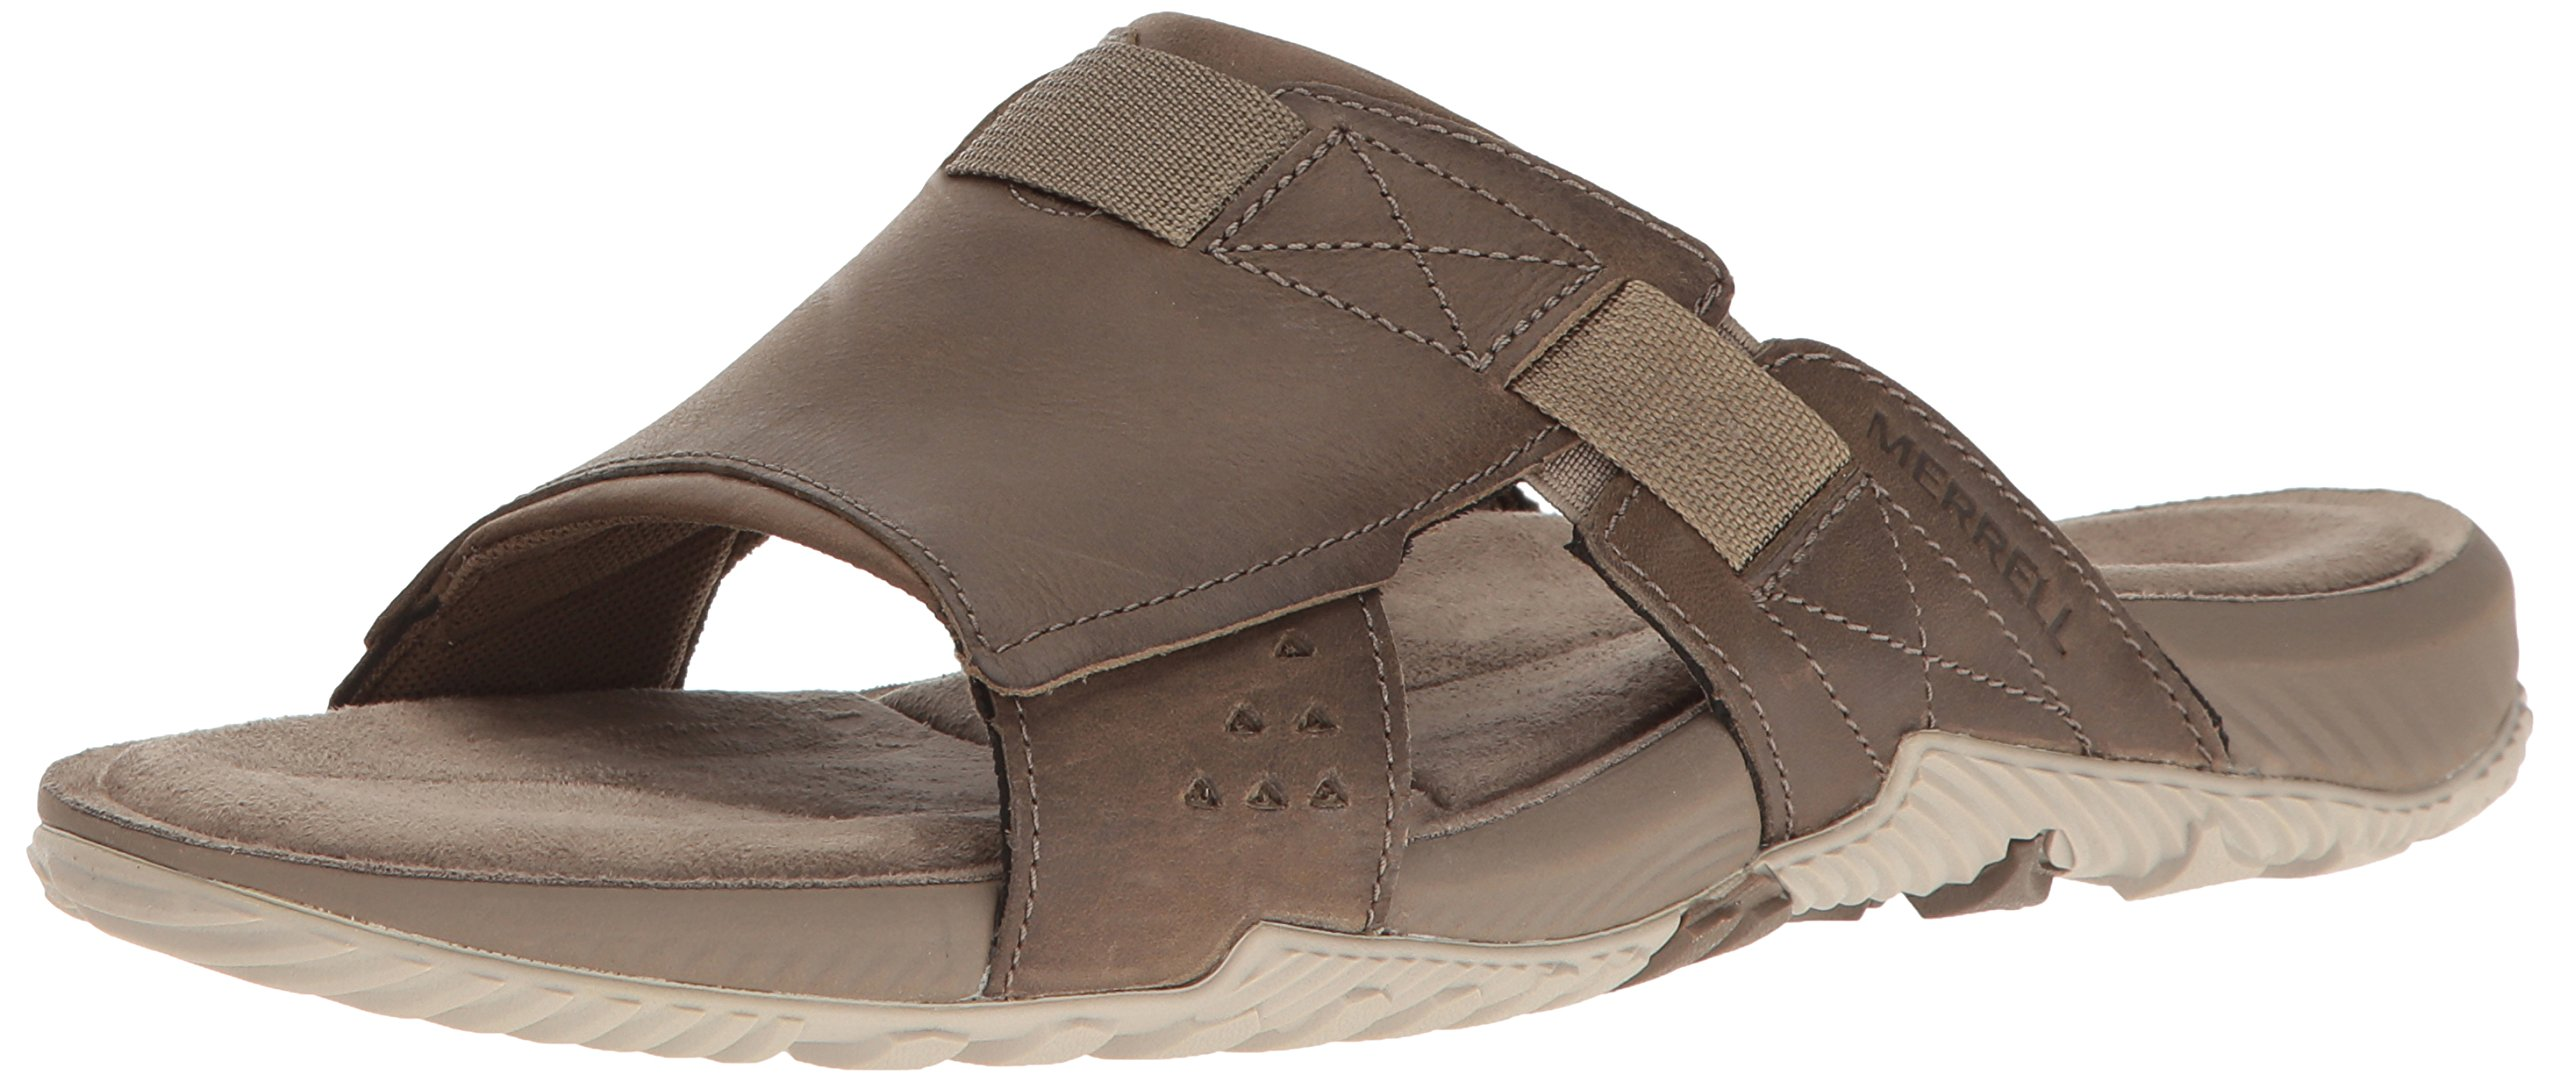 Merrell Men's Terrant Slide Sandal, Brindle, 13 M US